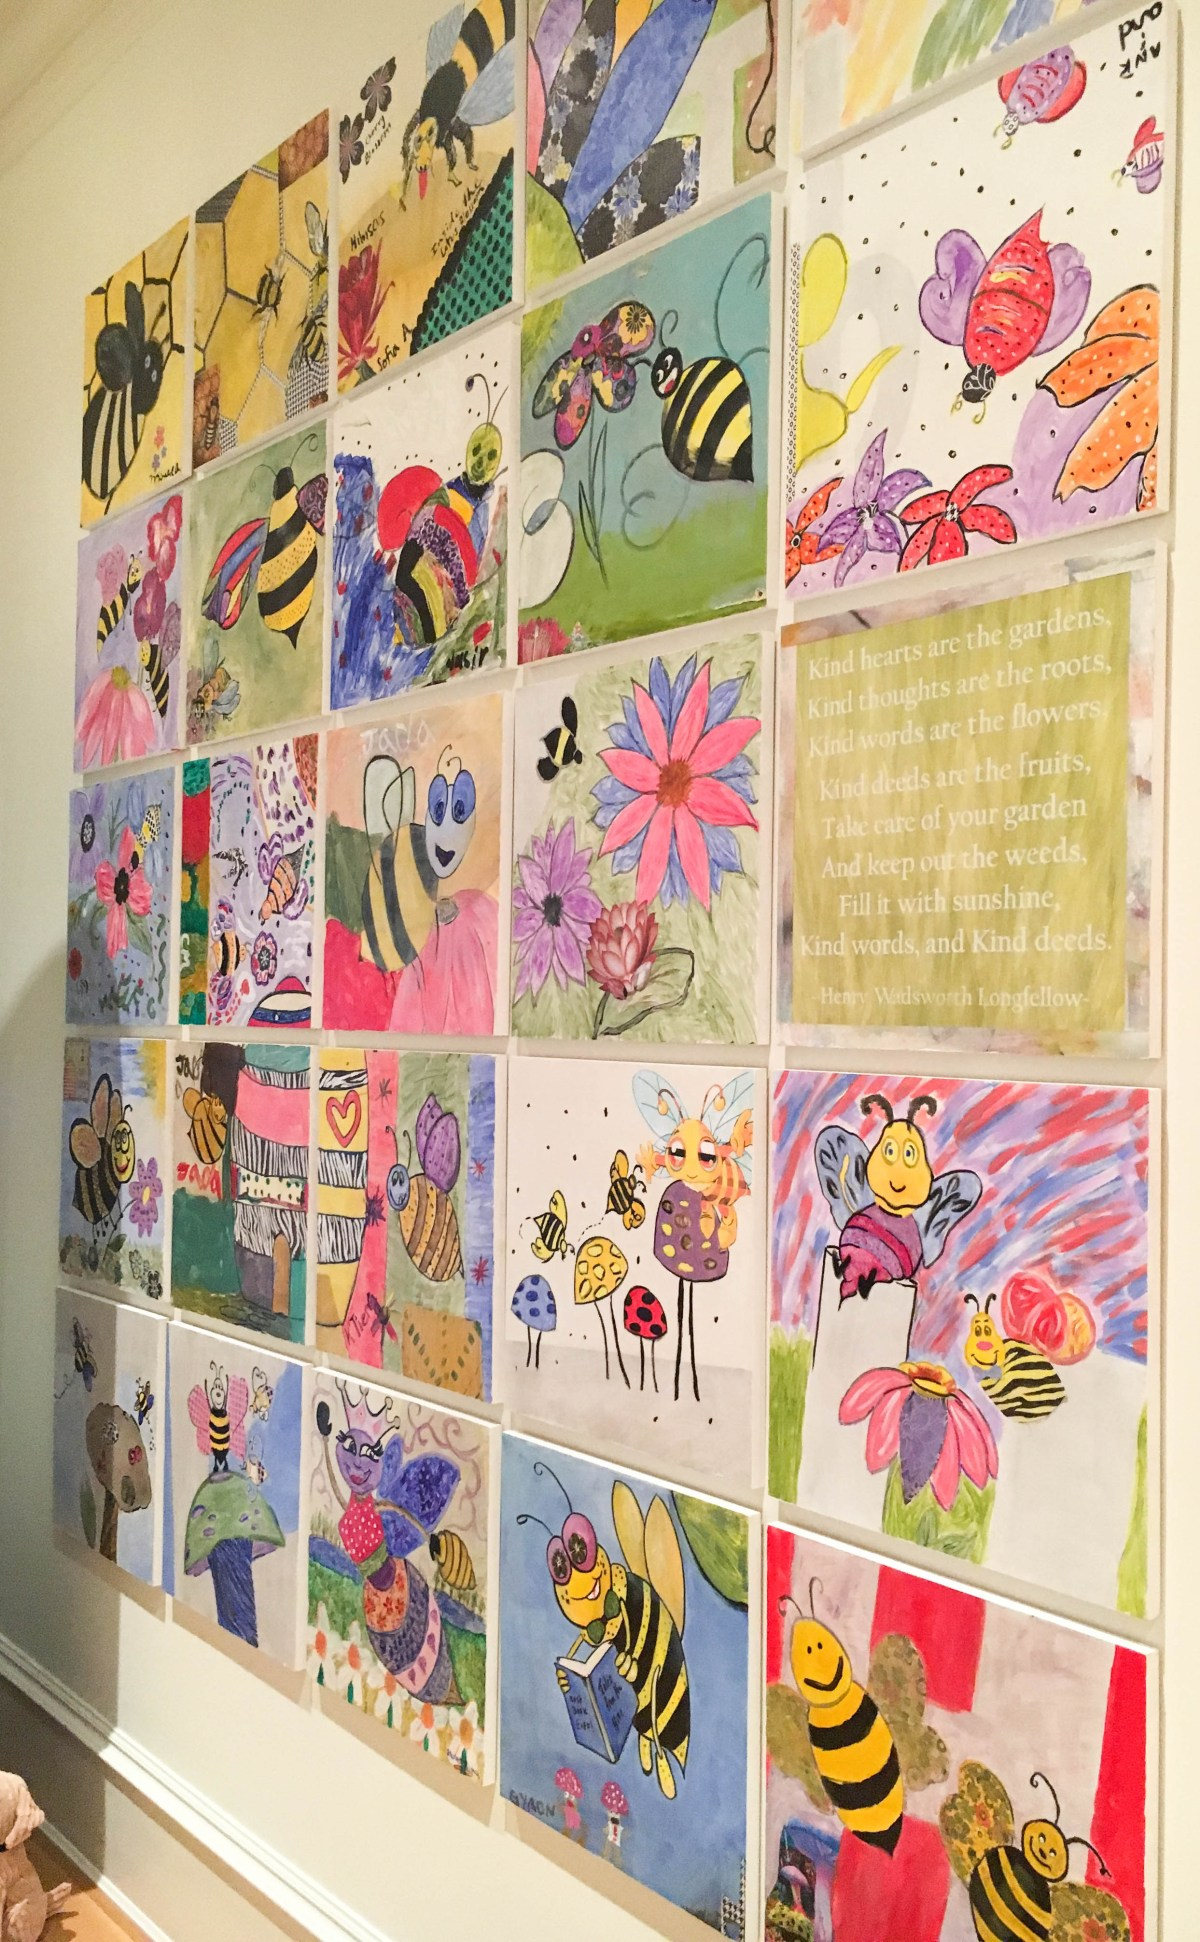 A beautiful and emotional gallery wall installation featuring paintings with a bee theme by patients, caregivers, staff, and volunteers of Children's National Health System.